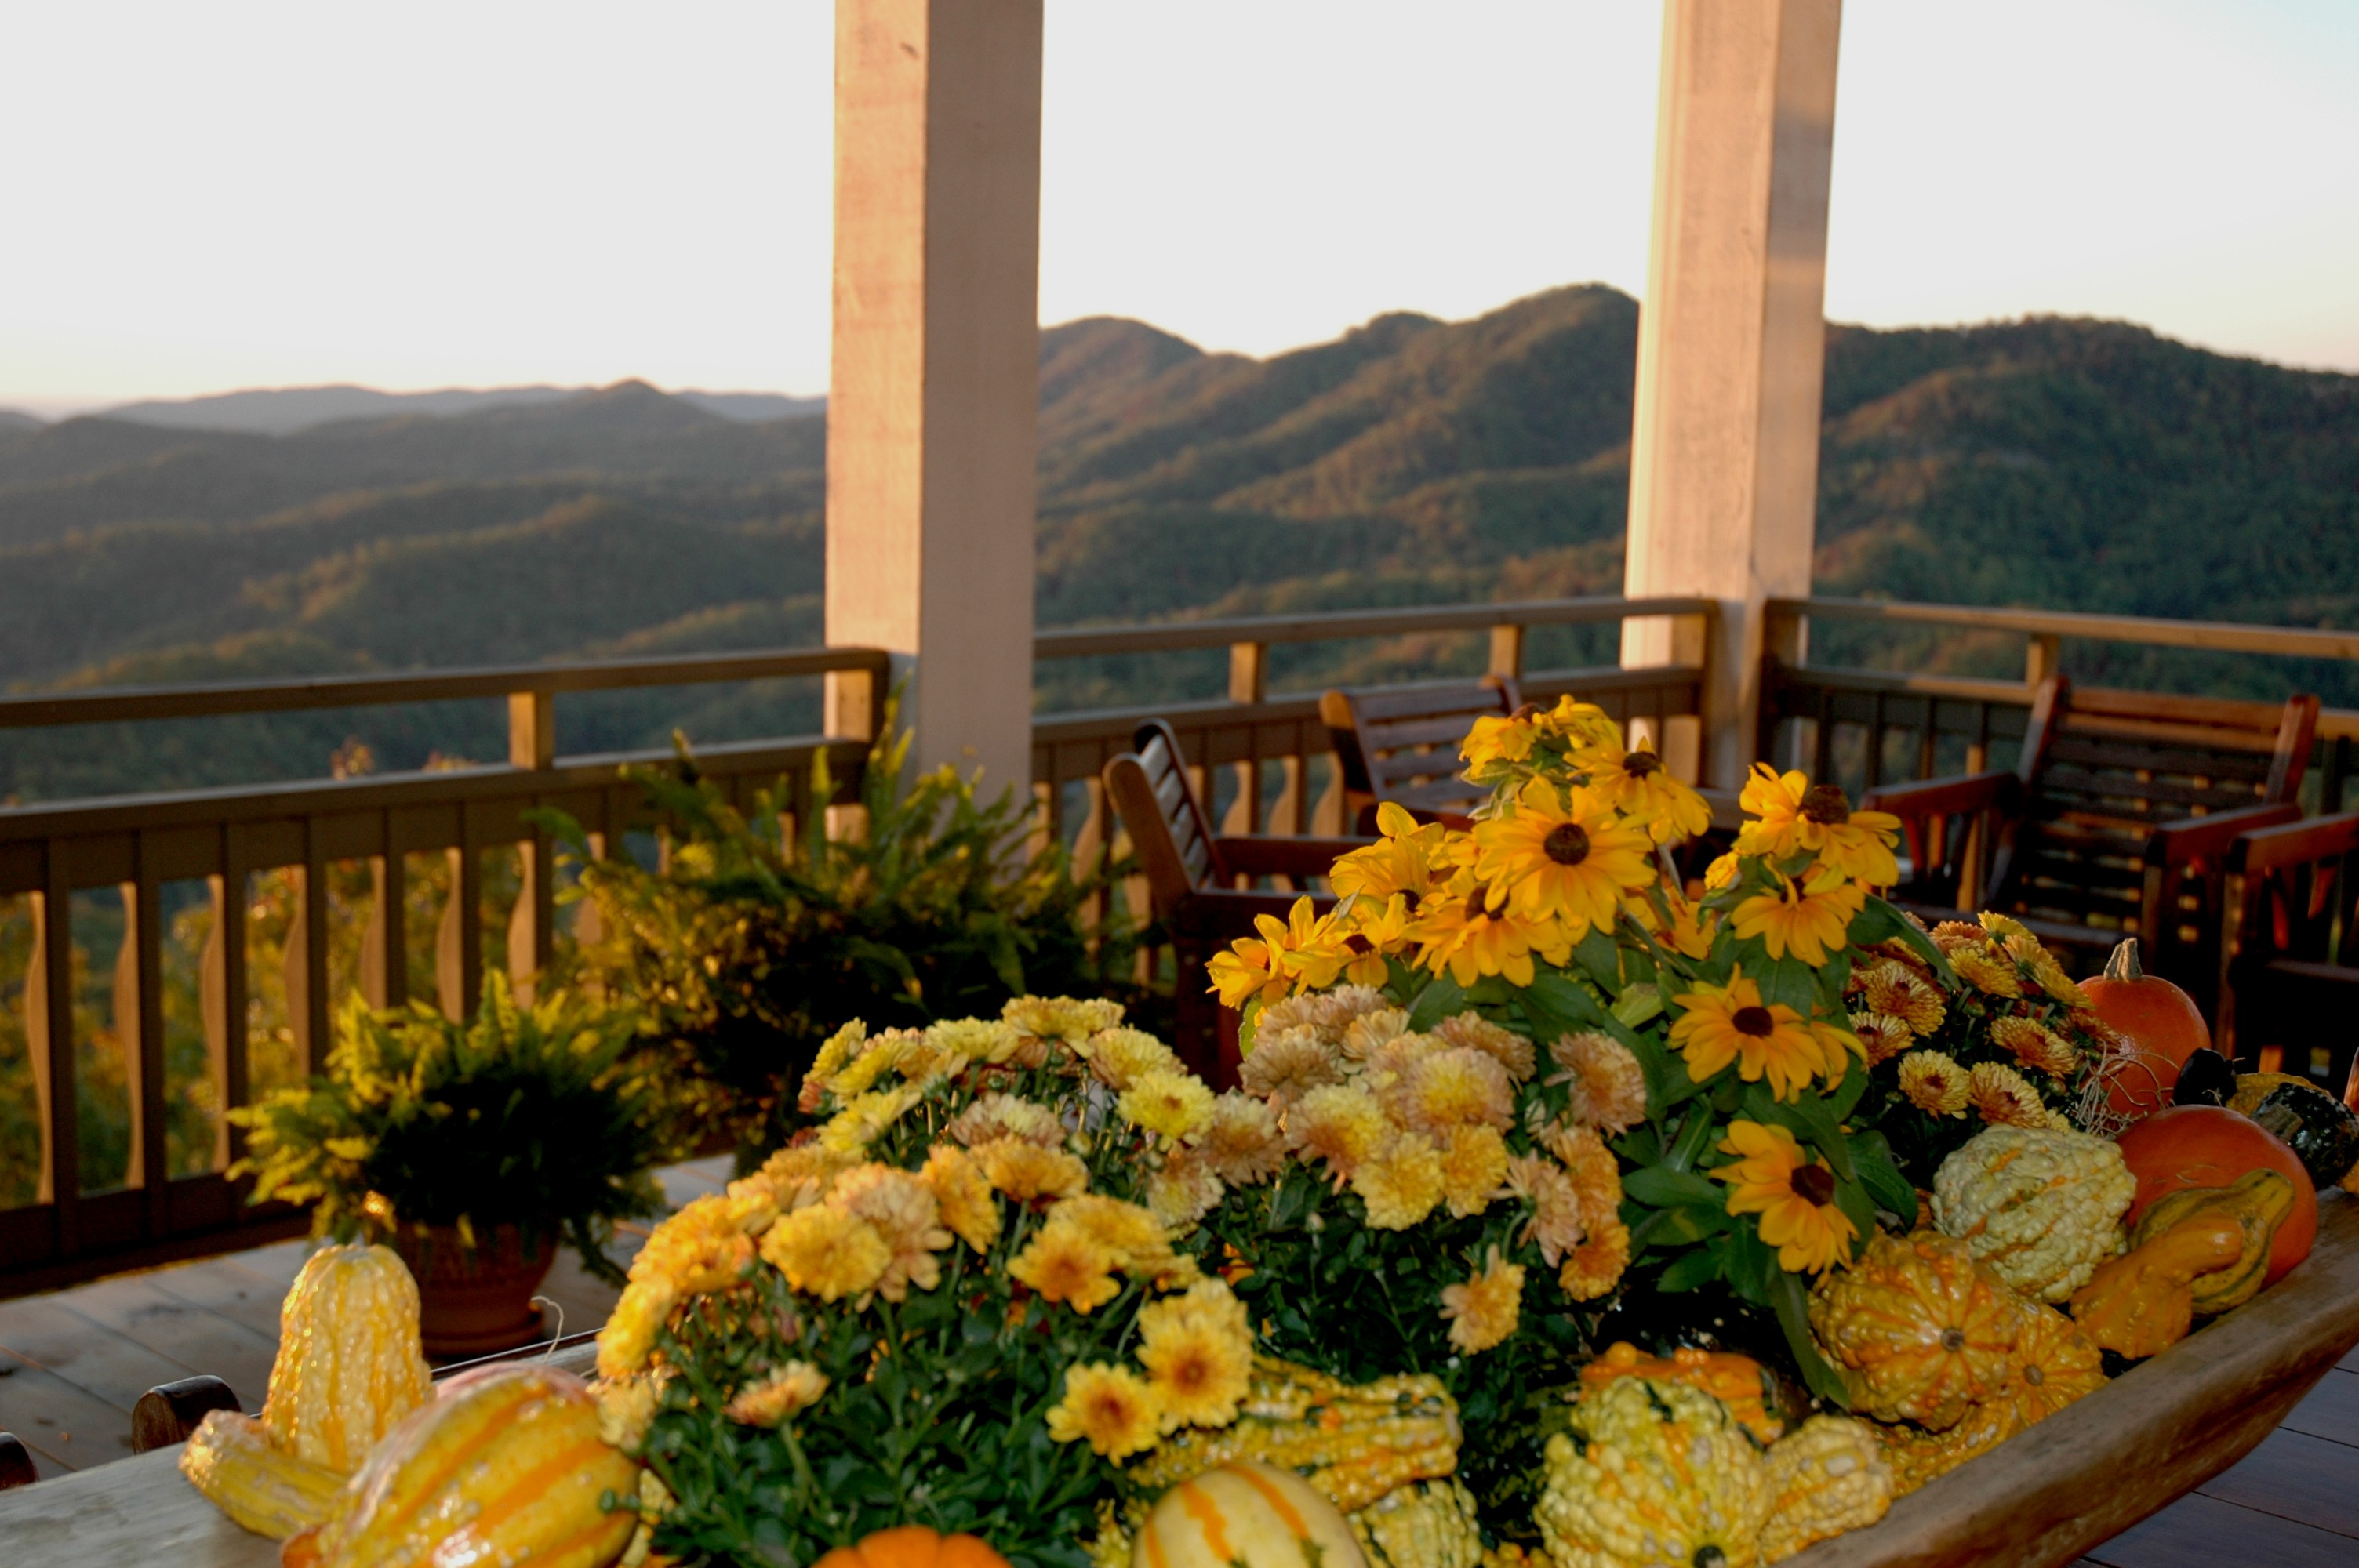 Fall Display on the front veranda